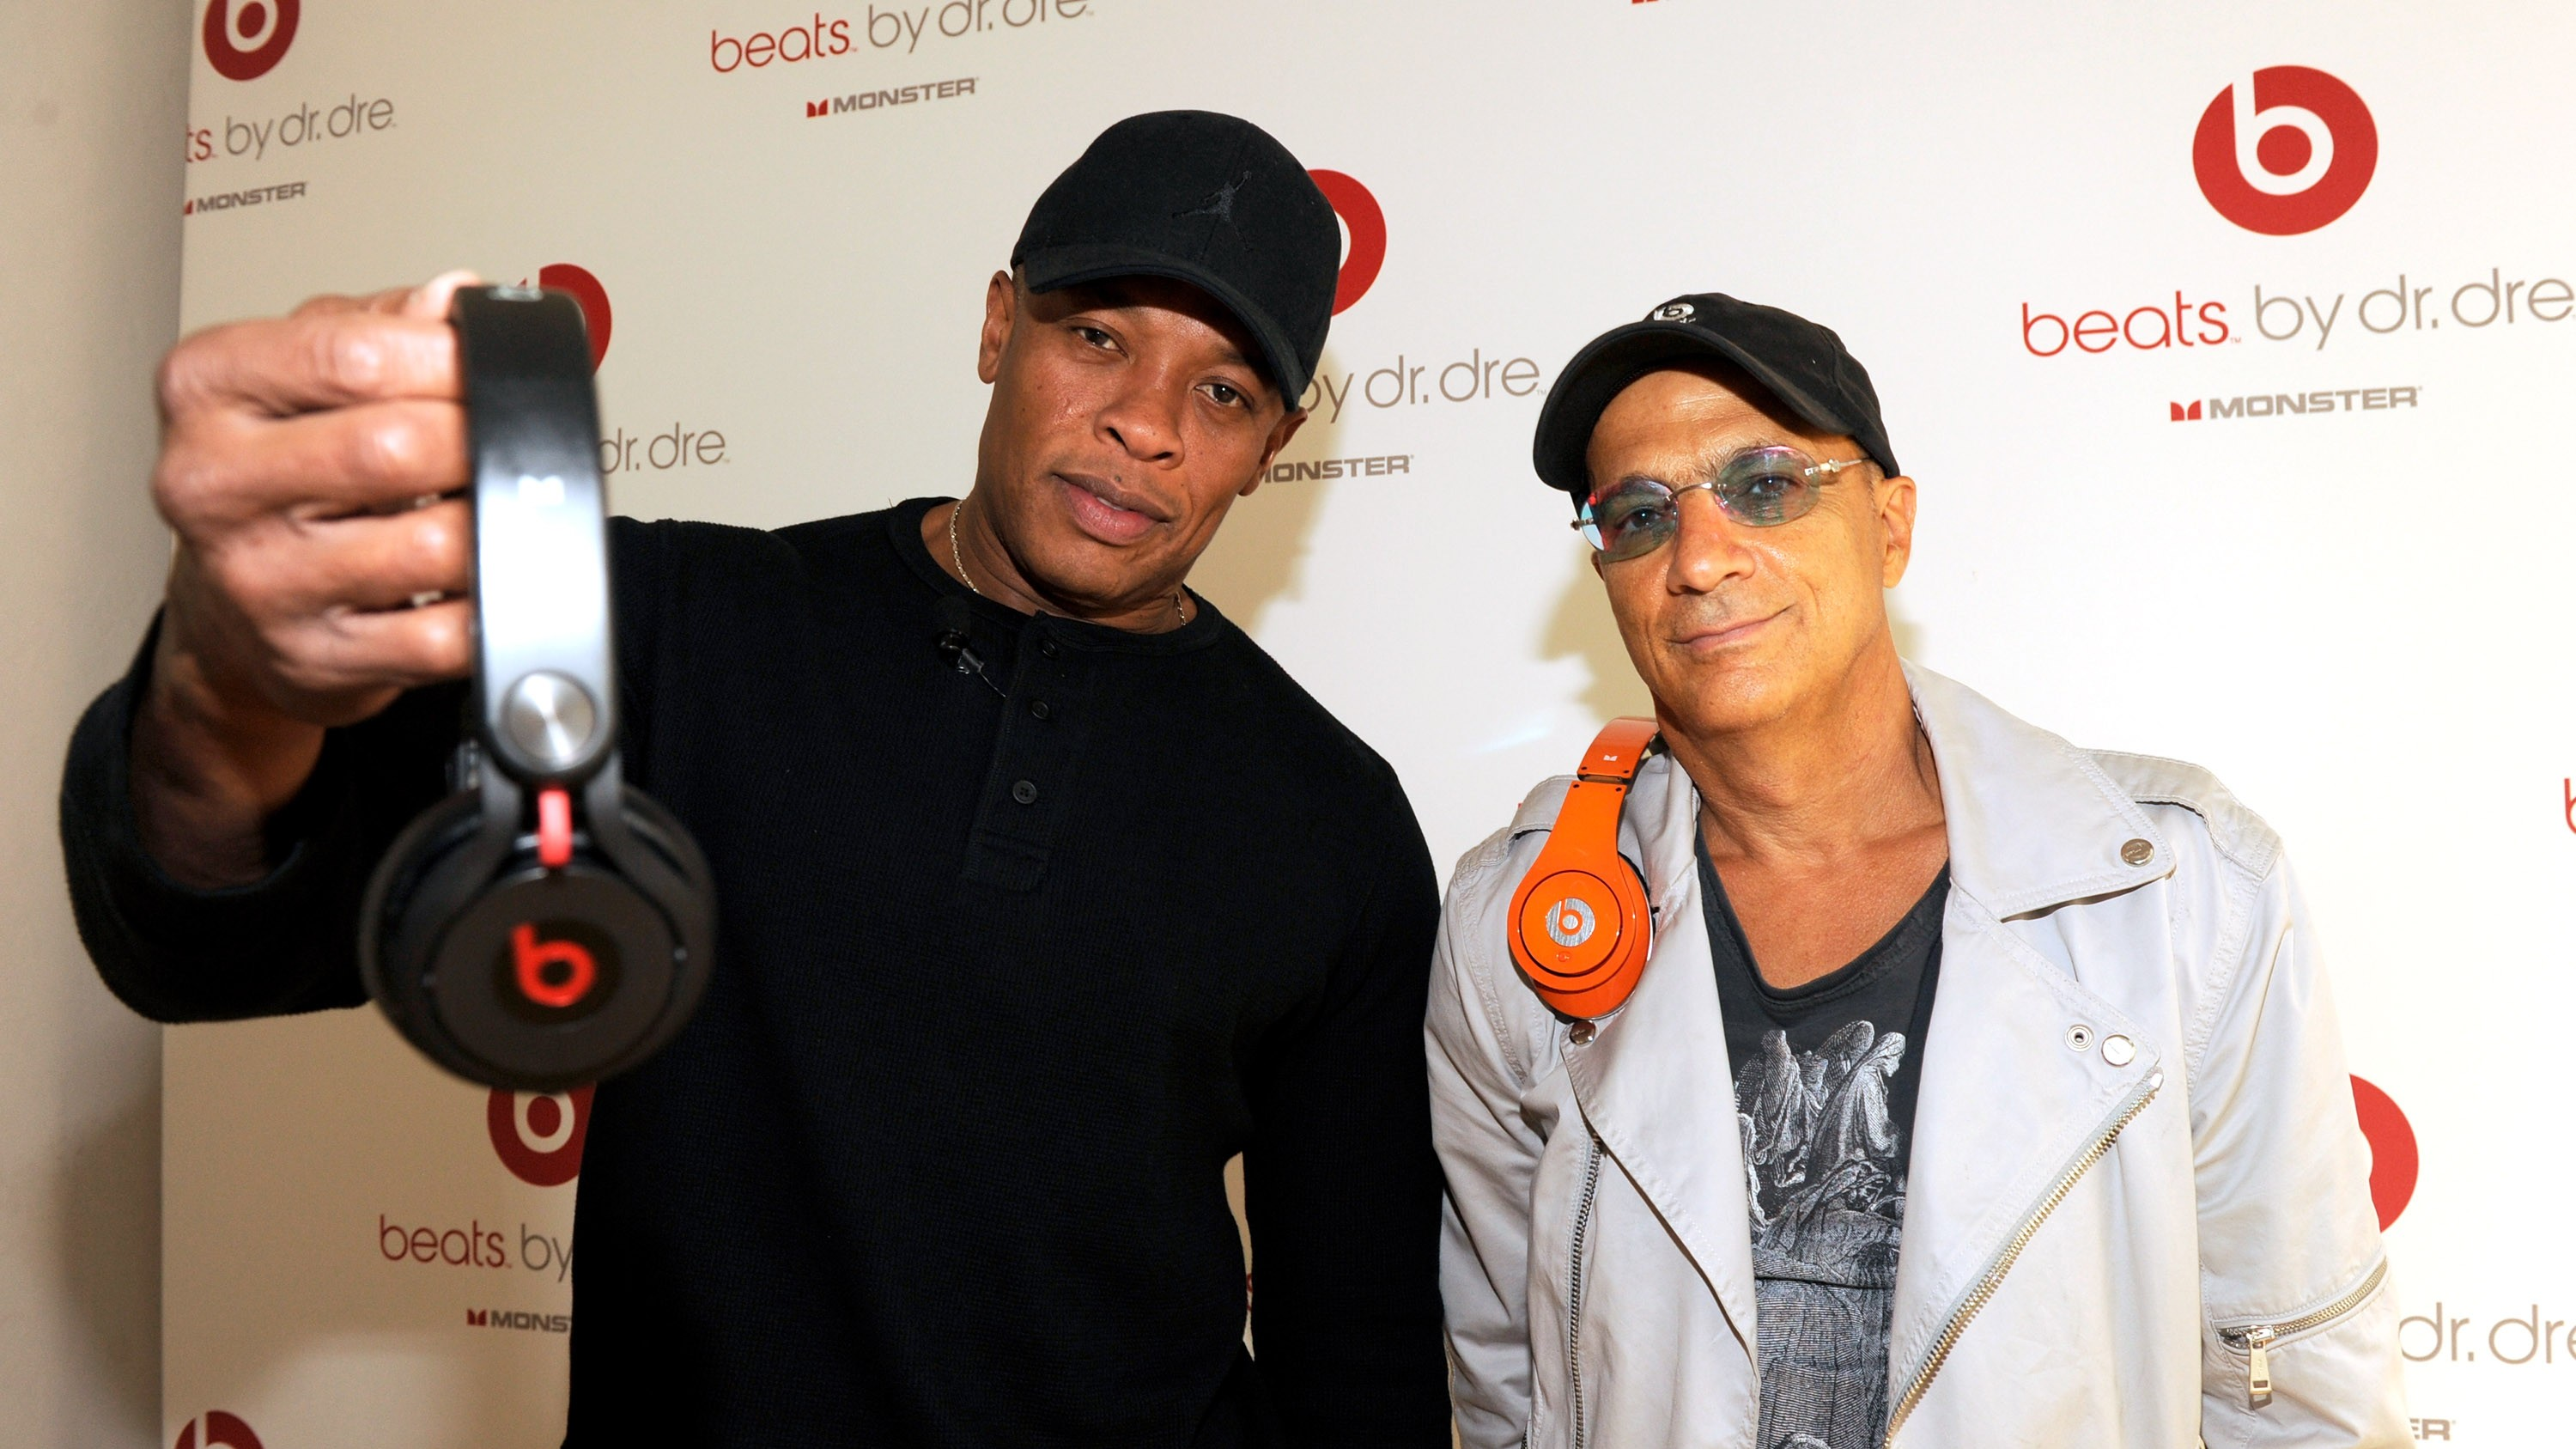 beats electronics founders